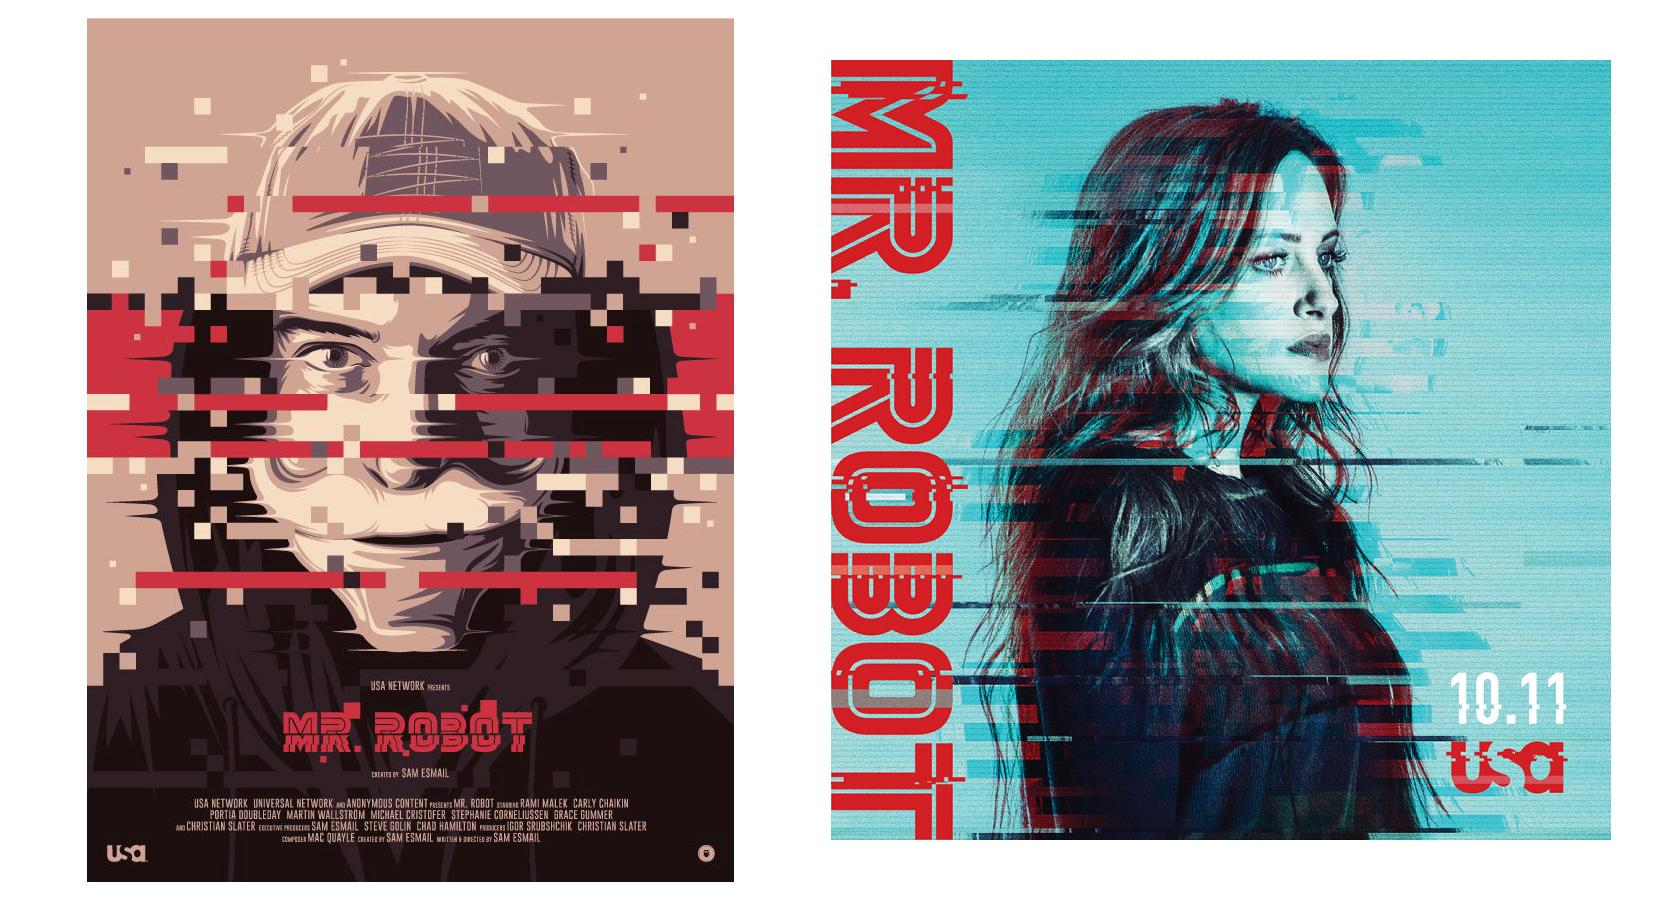 glitch, misprint, visual interference effects graphic design trends